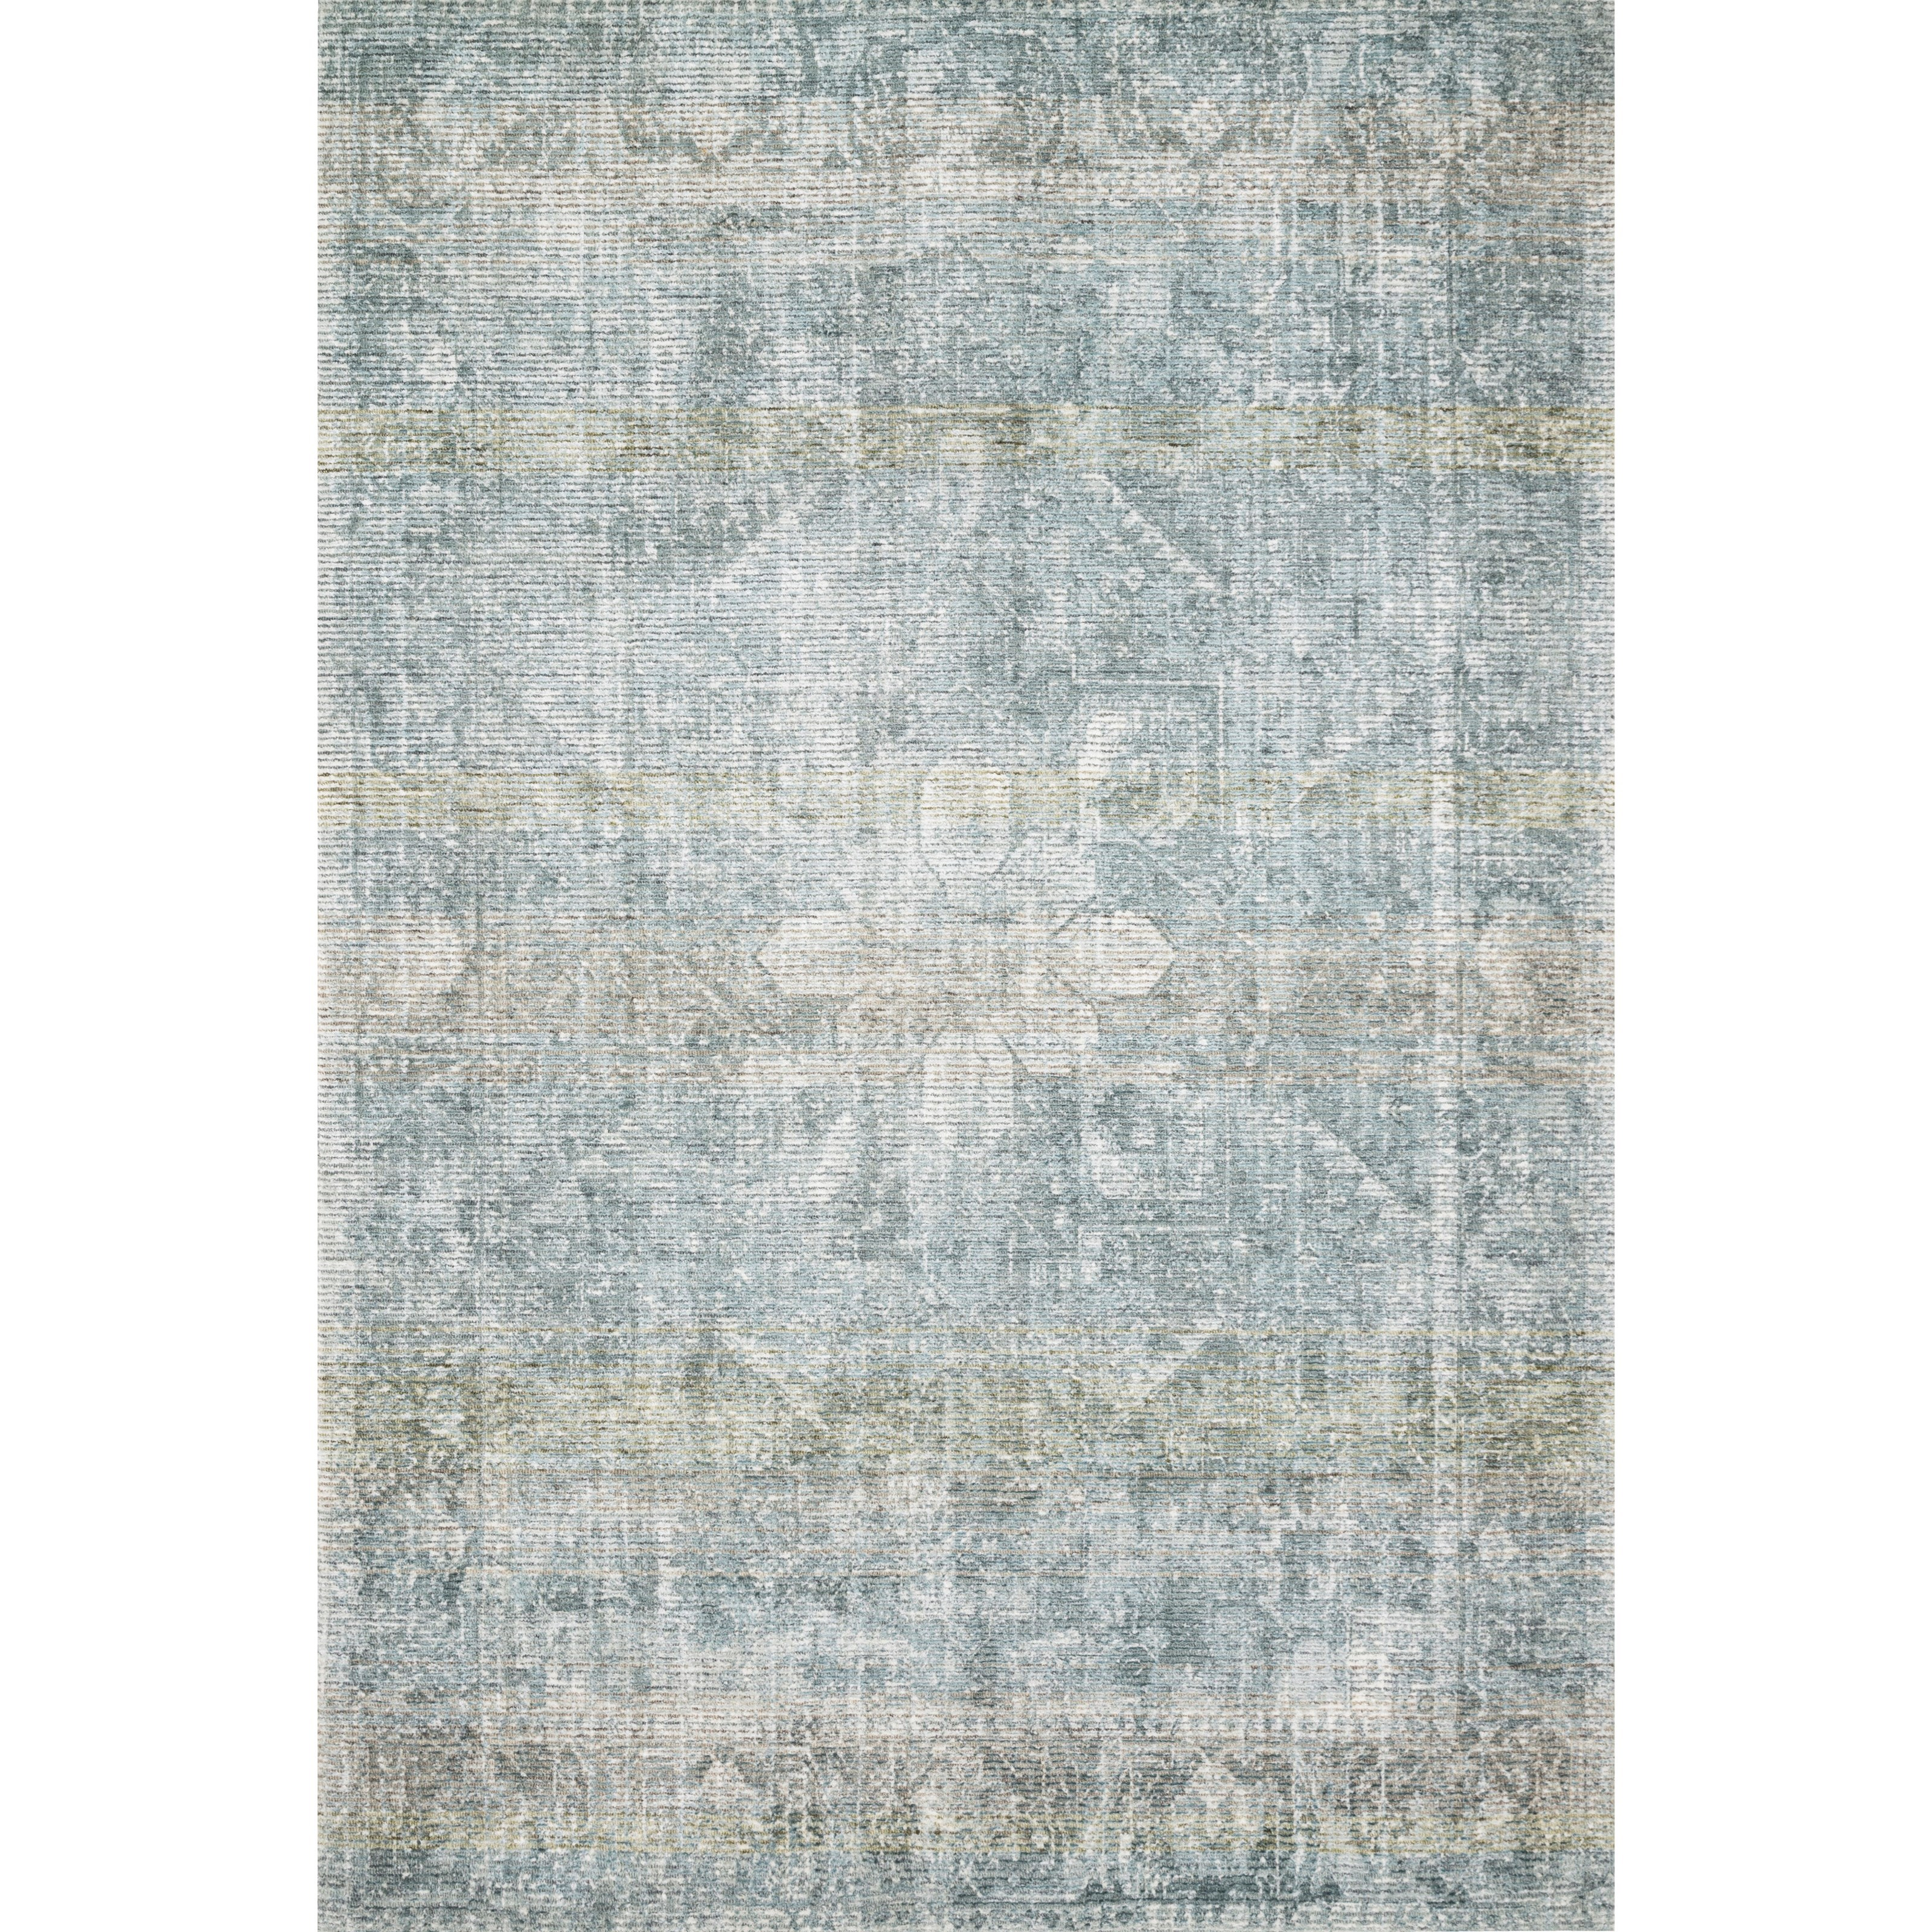 "Rumi 9'3"" x 13' Teal Rug by Loloi Rugs at Virginia Furniture Market"